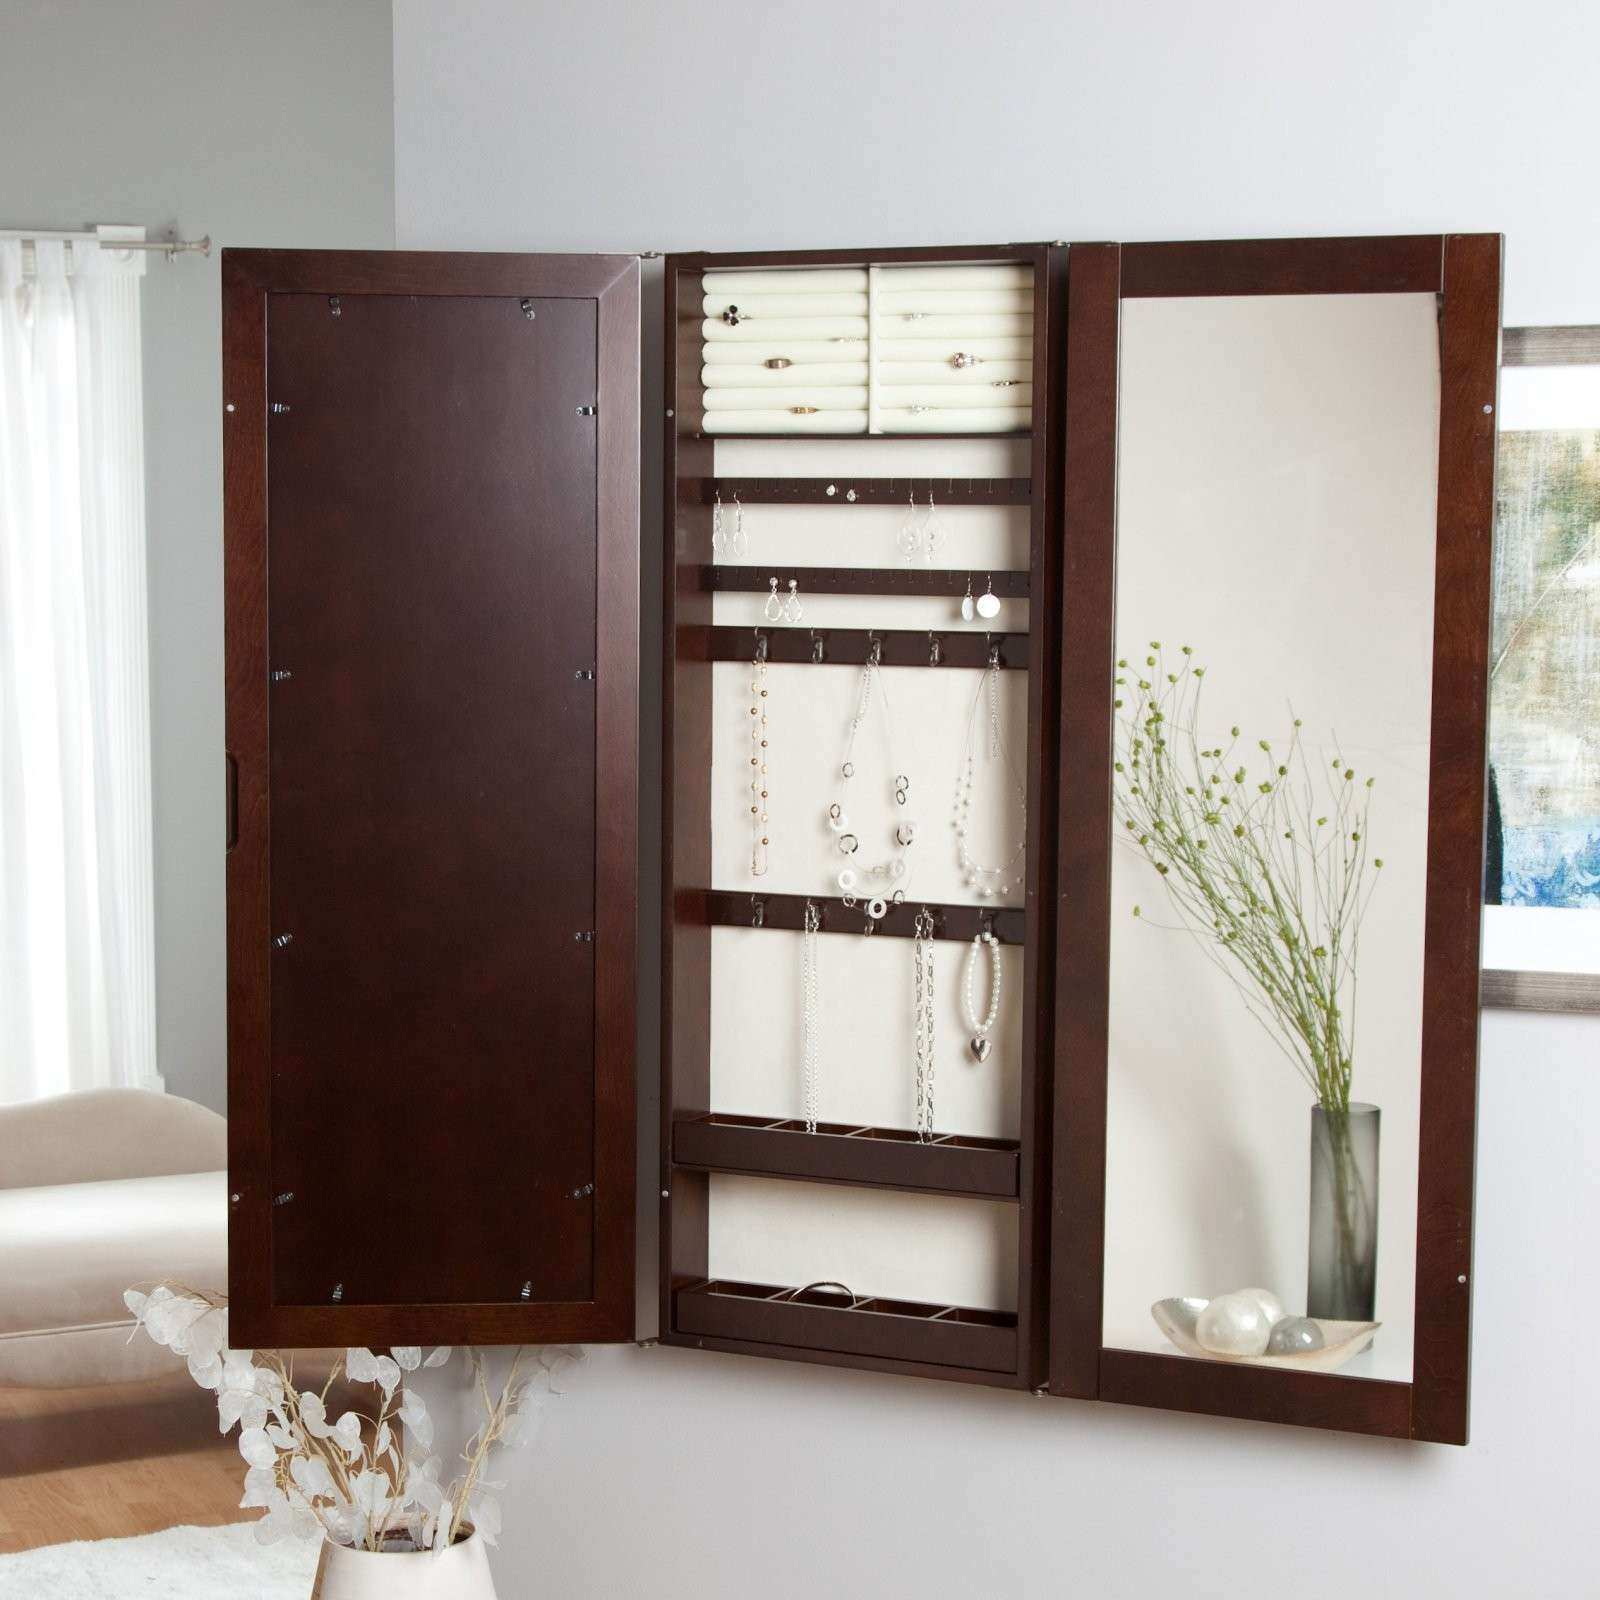 17 Varied Kinds of Wall Mount Jewelry Armoire to Get and Use